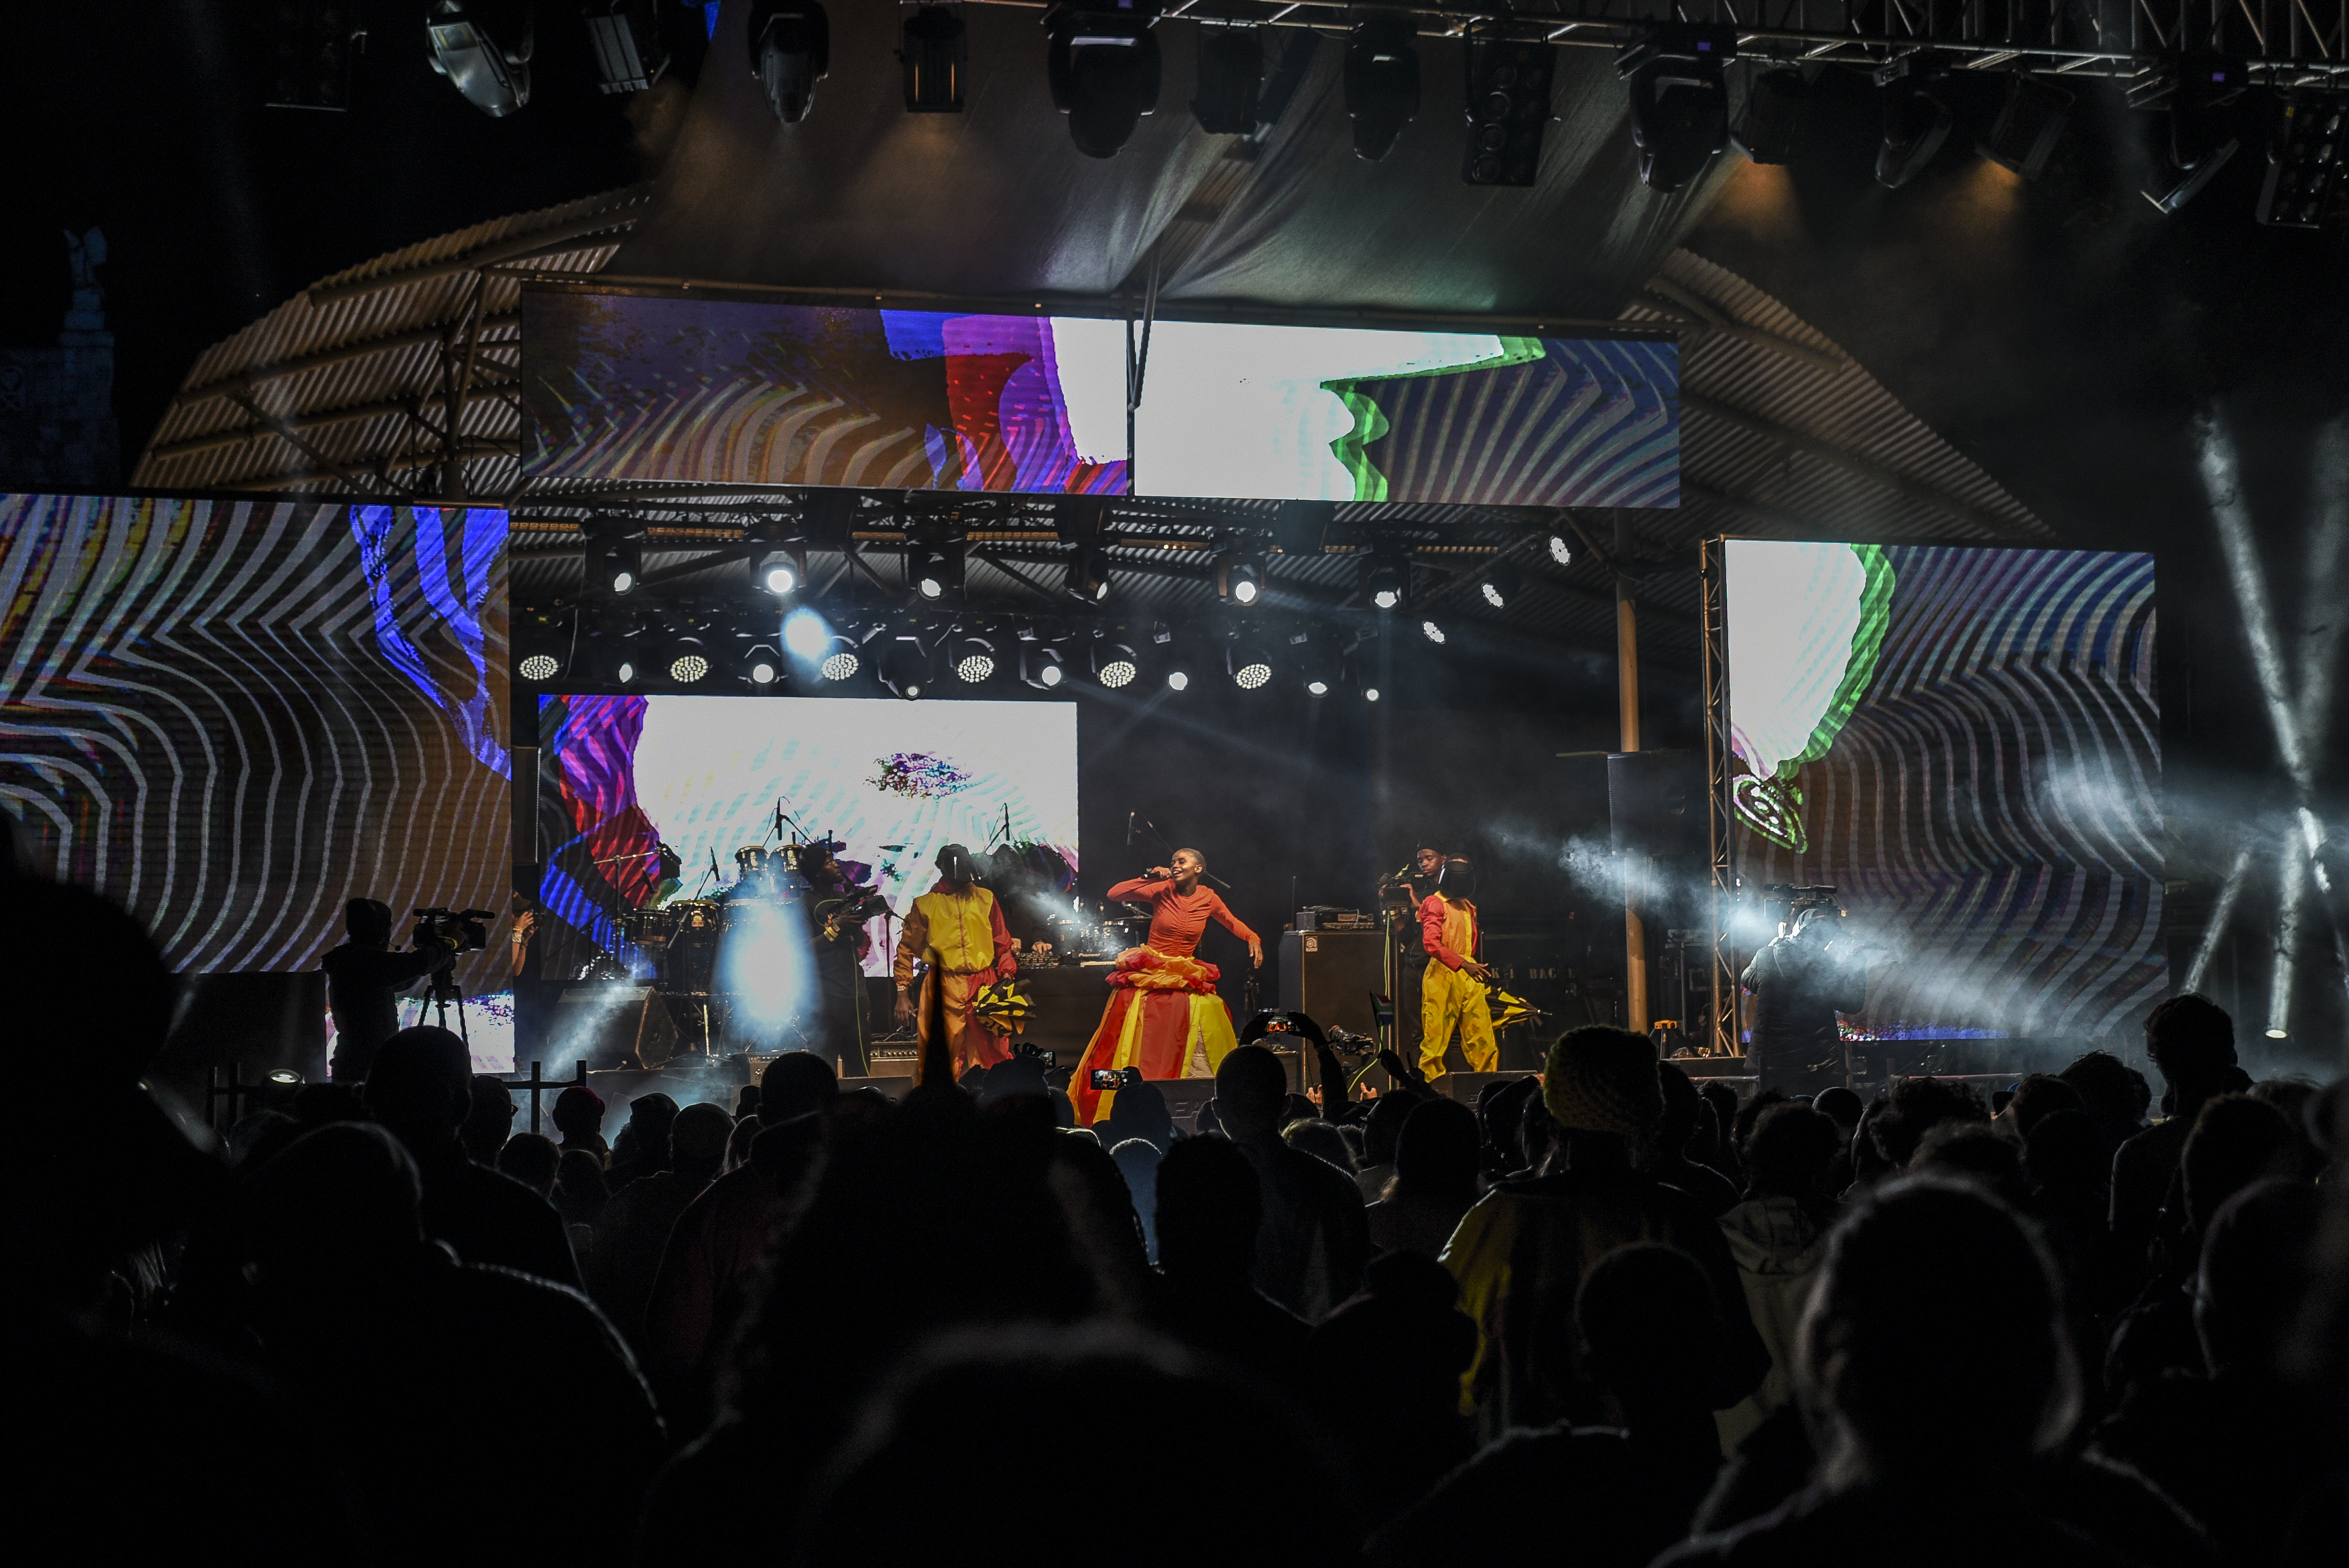 MTN Bushfire music festival continues to grow, attracting big name acts to Swaziland, eSwatini